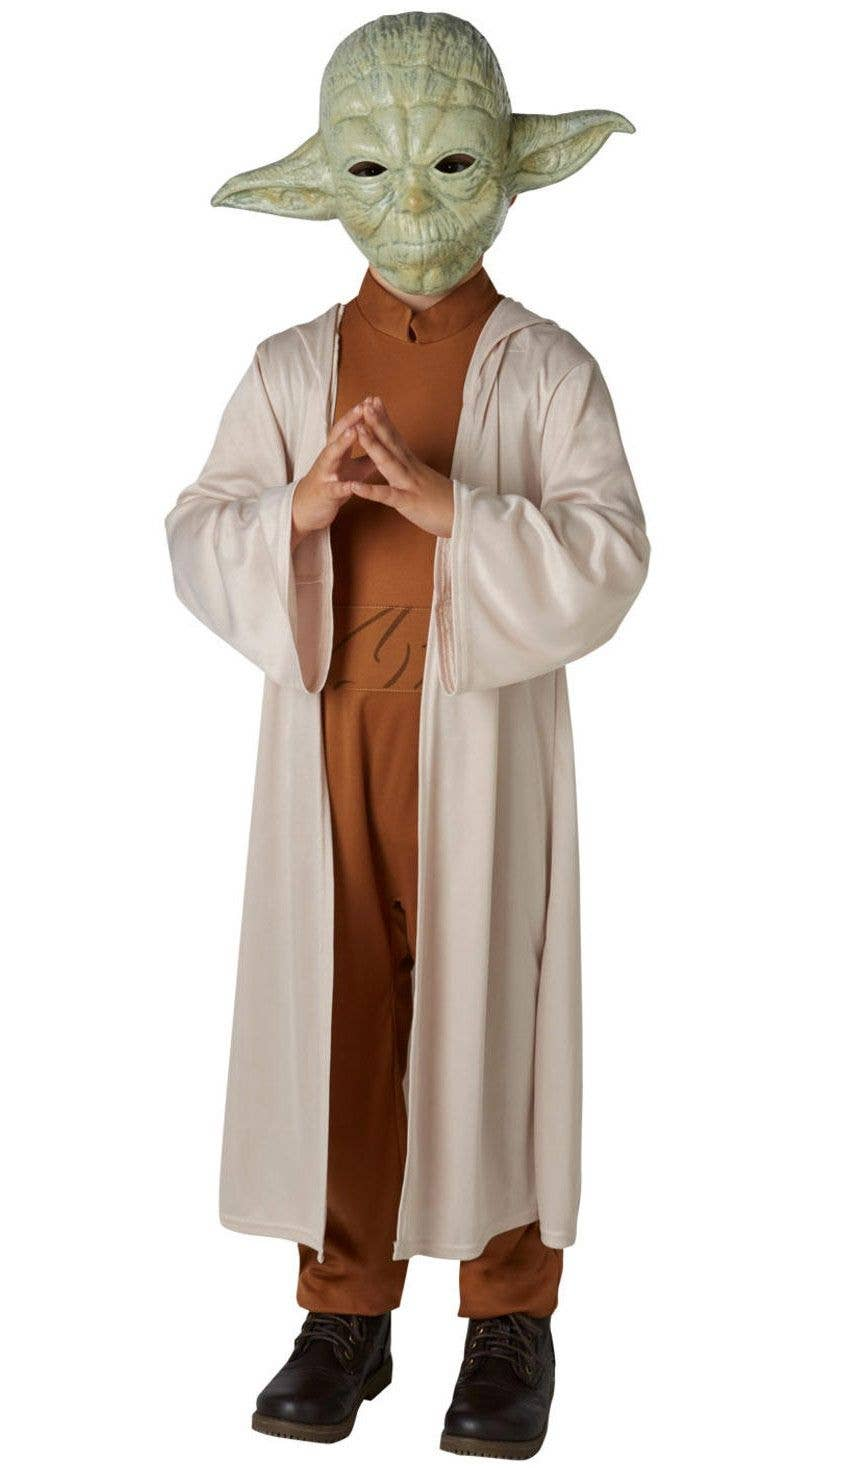 cef87494ffa8e Yoda Jedi Master Star Wars Boys Fancy Dress Costume Main Image